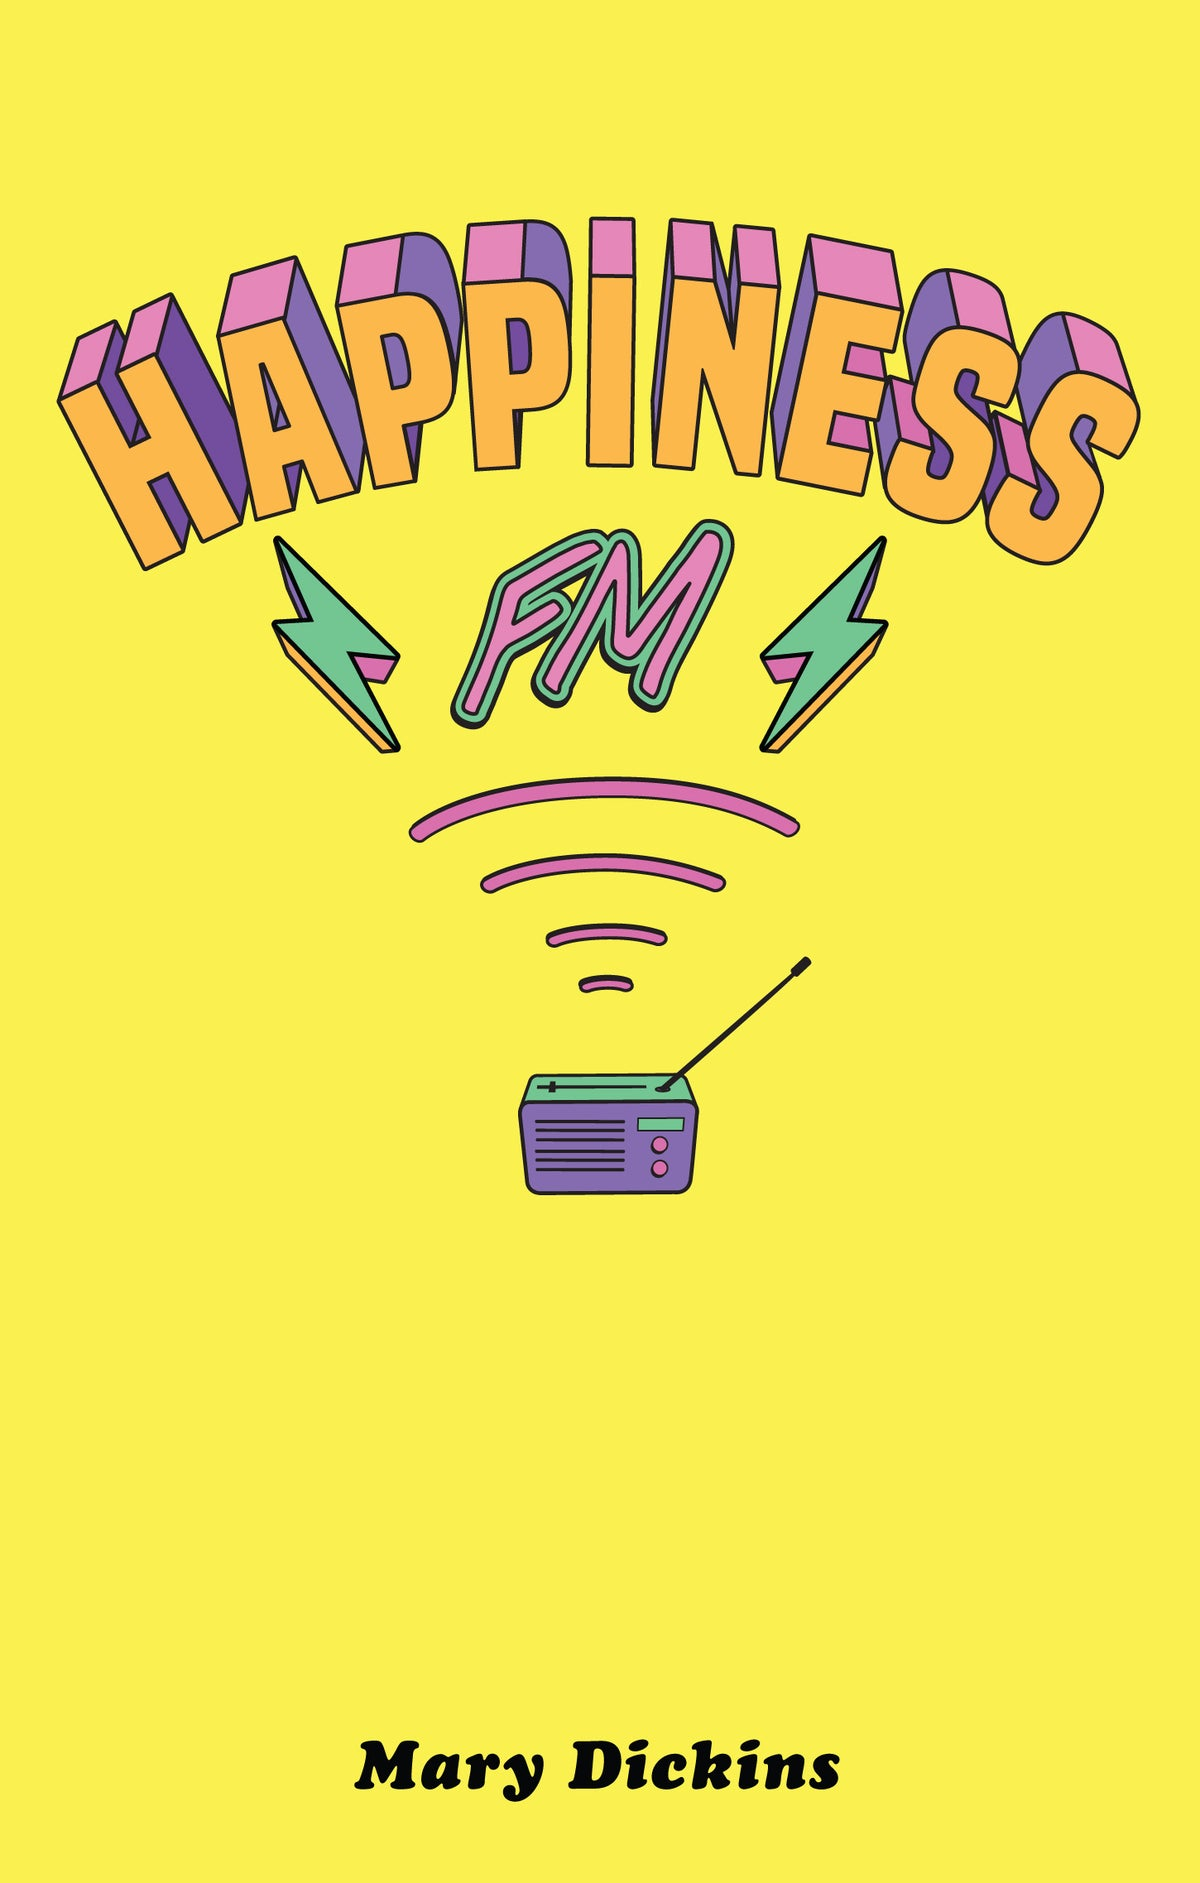 Image of Happiness FM by Mary Dickins